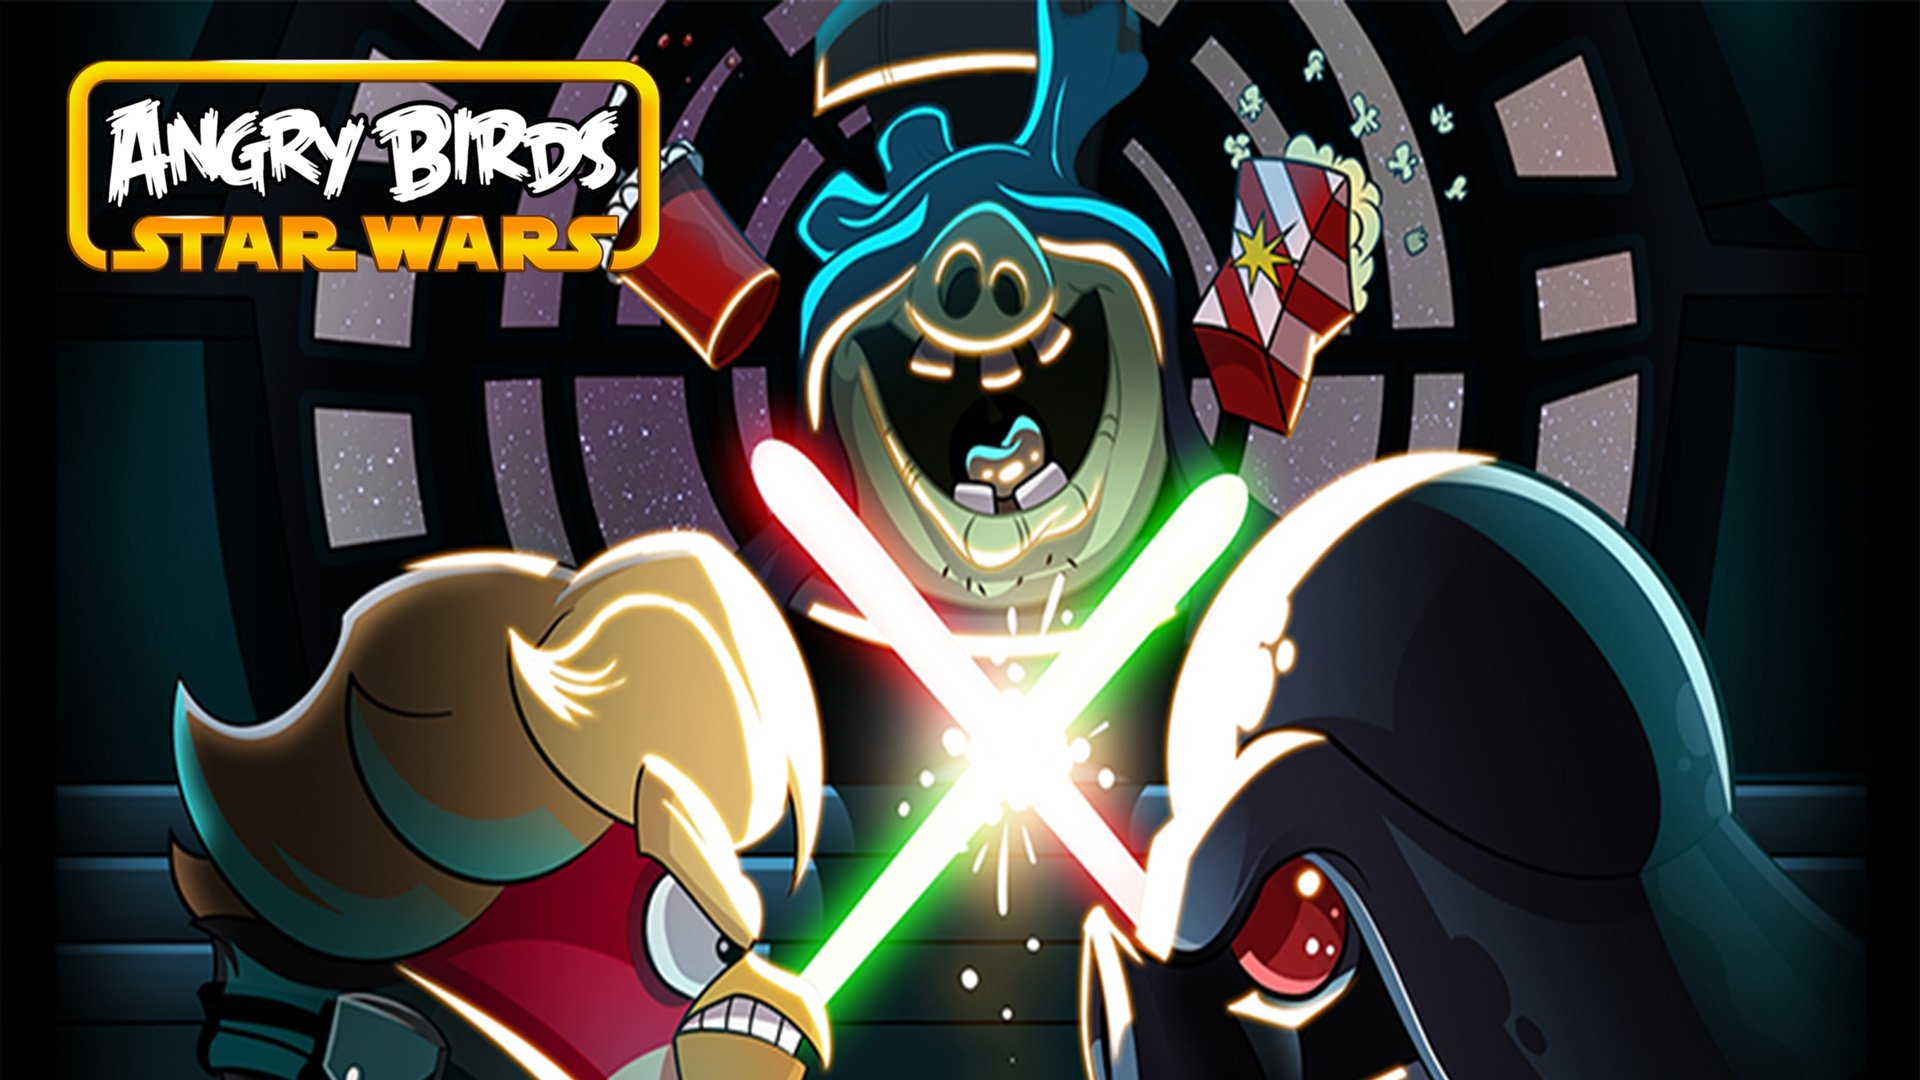 Angry Birds Star Wars Hd Wallpaper Background Image 1920x1080 Id 530925 Wallpaper Abyss